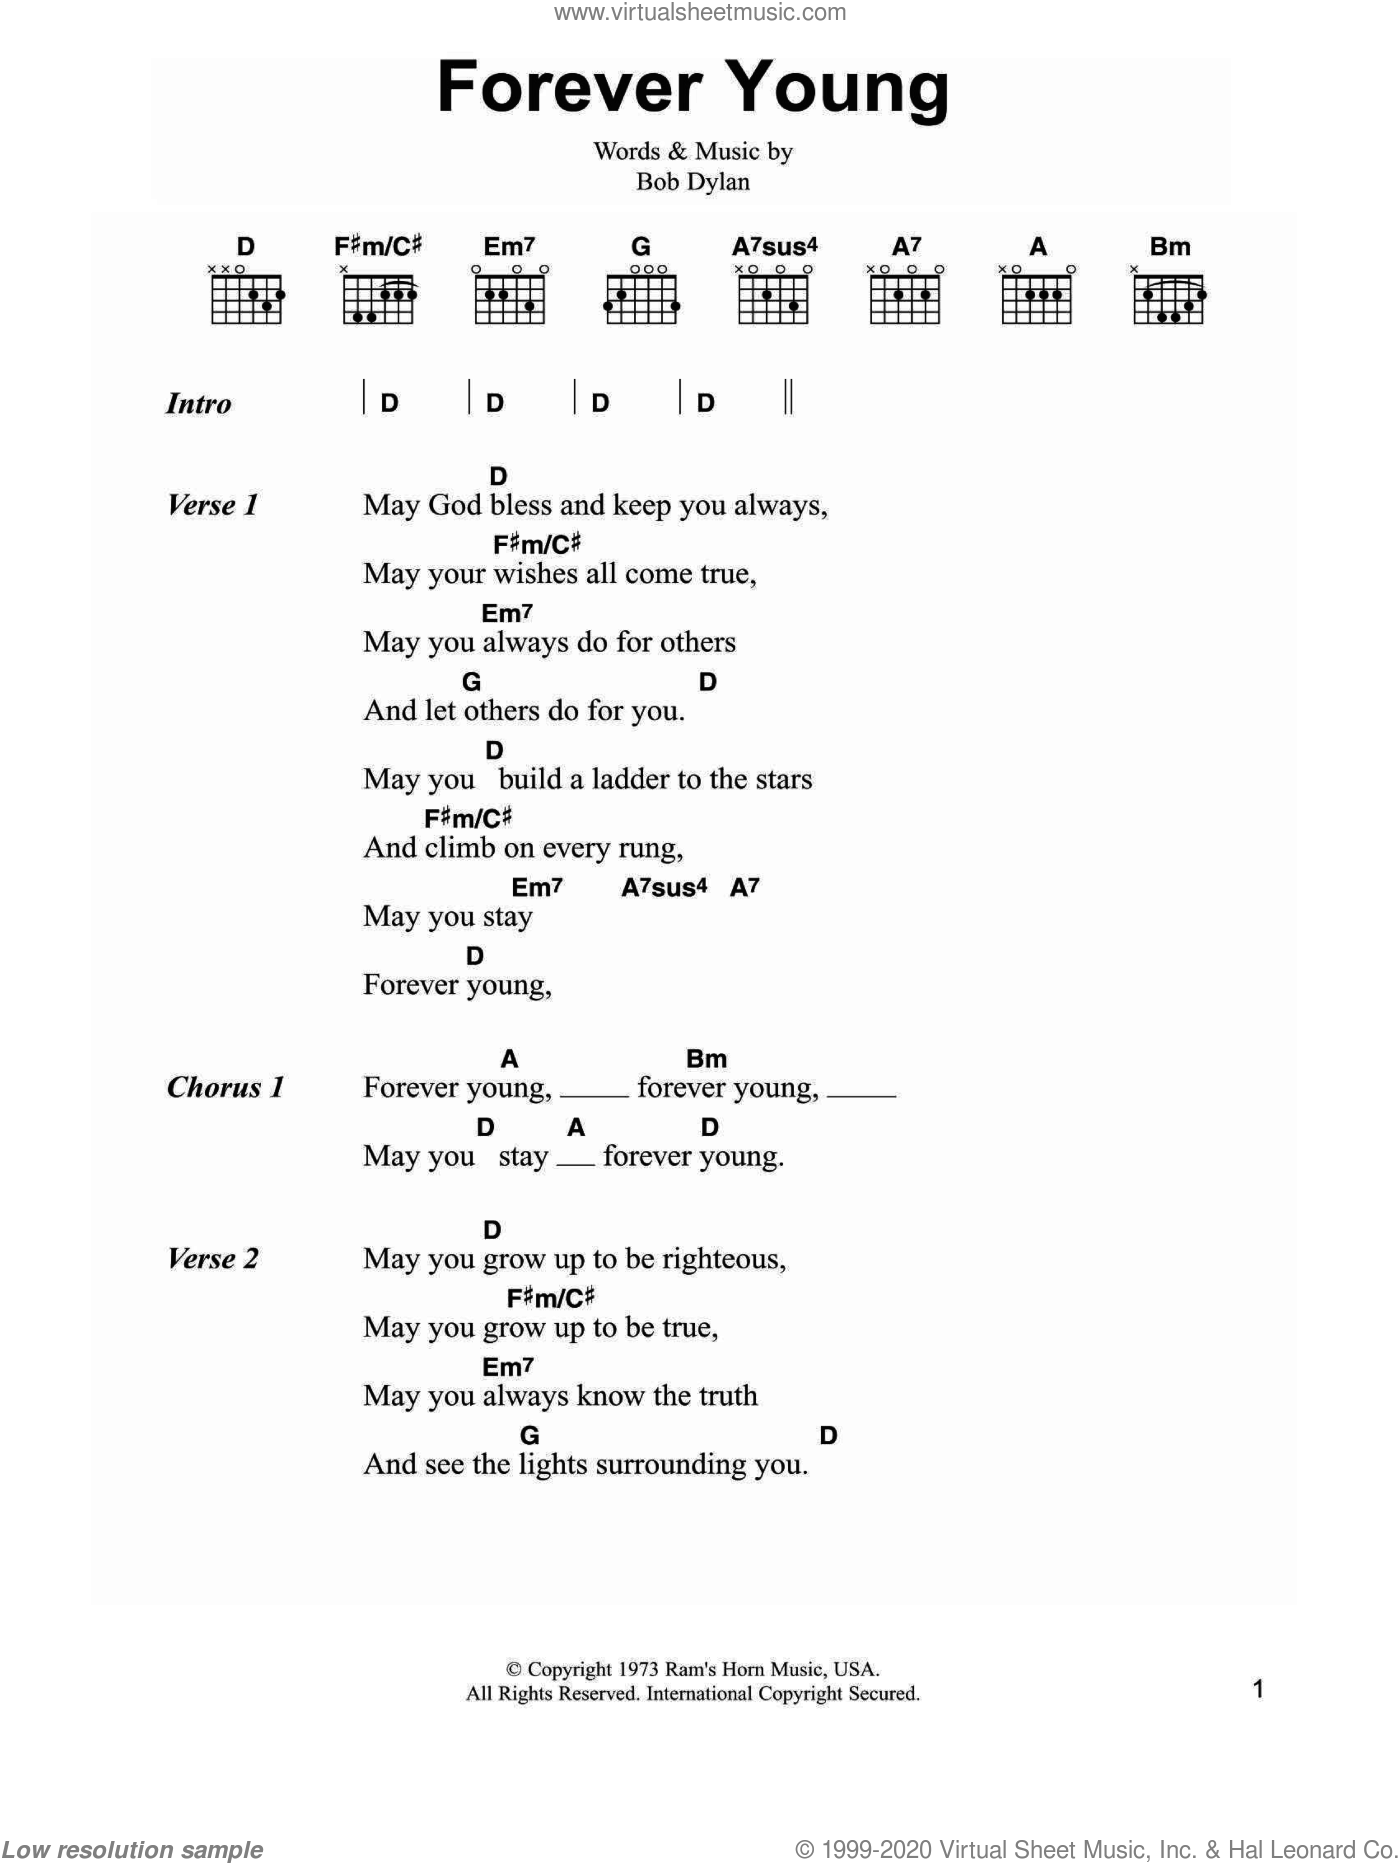 Dylan - Forever Young sheet music for guitar (chords) [PDF]